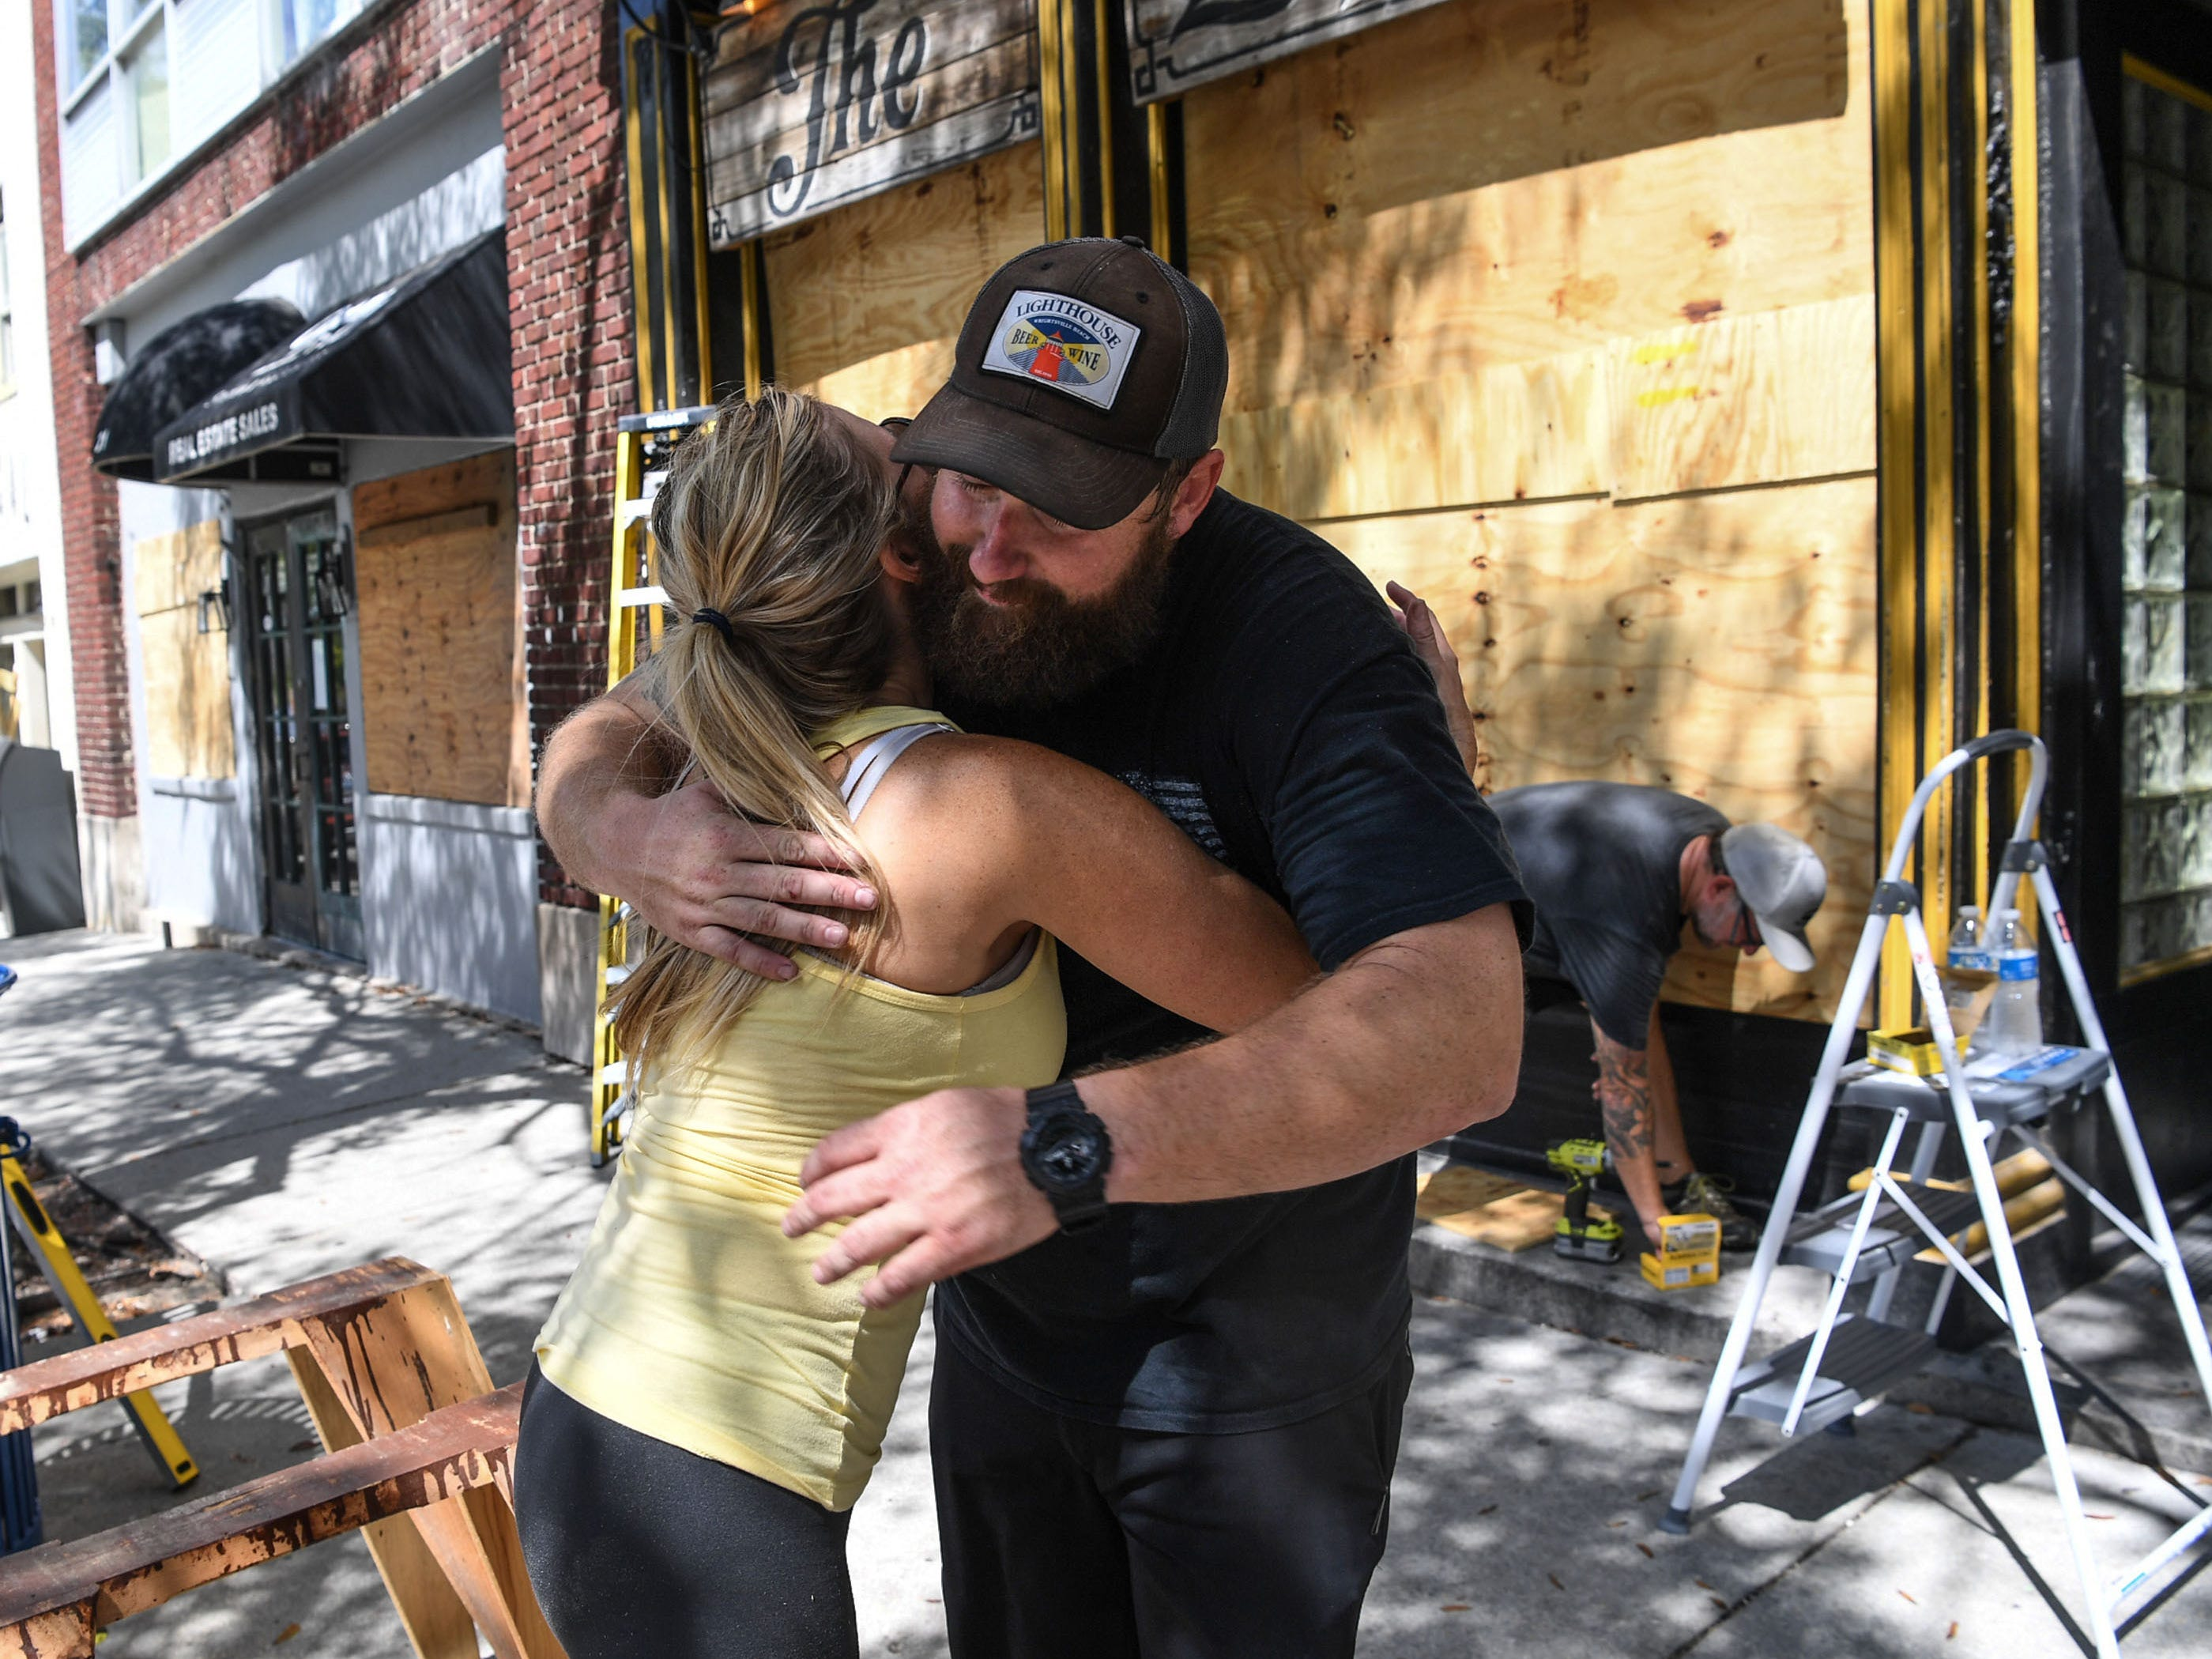 Jennifer Wilson gives a hug to Andy Correll at The Liquid Room, a bar near the riverfront in Wilmington, N.C., Sept. 12, 2018, before the arrival of Hurricane Florence.